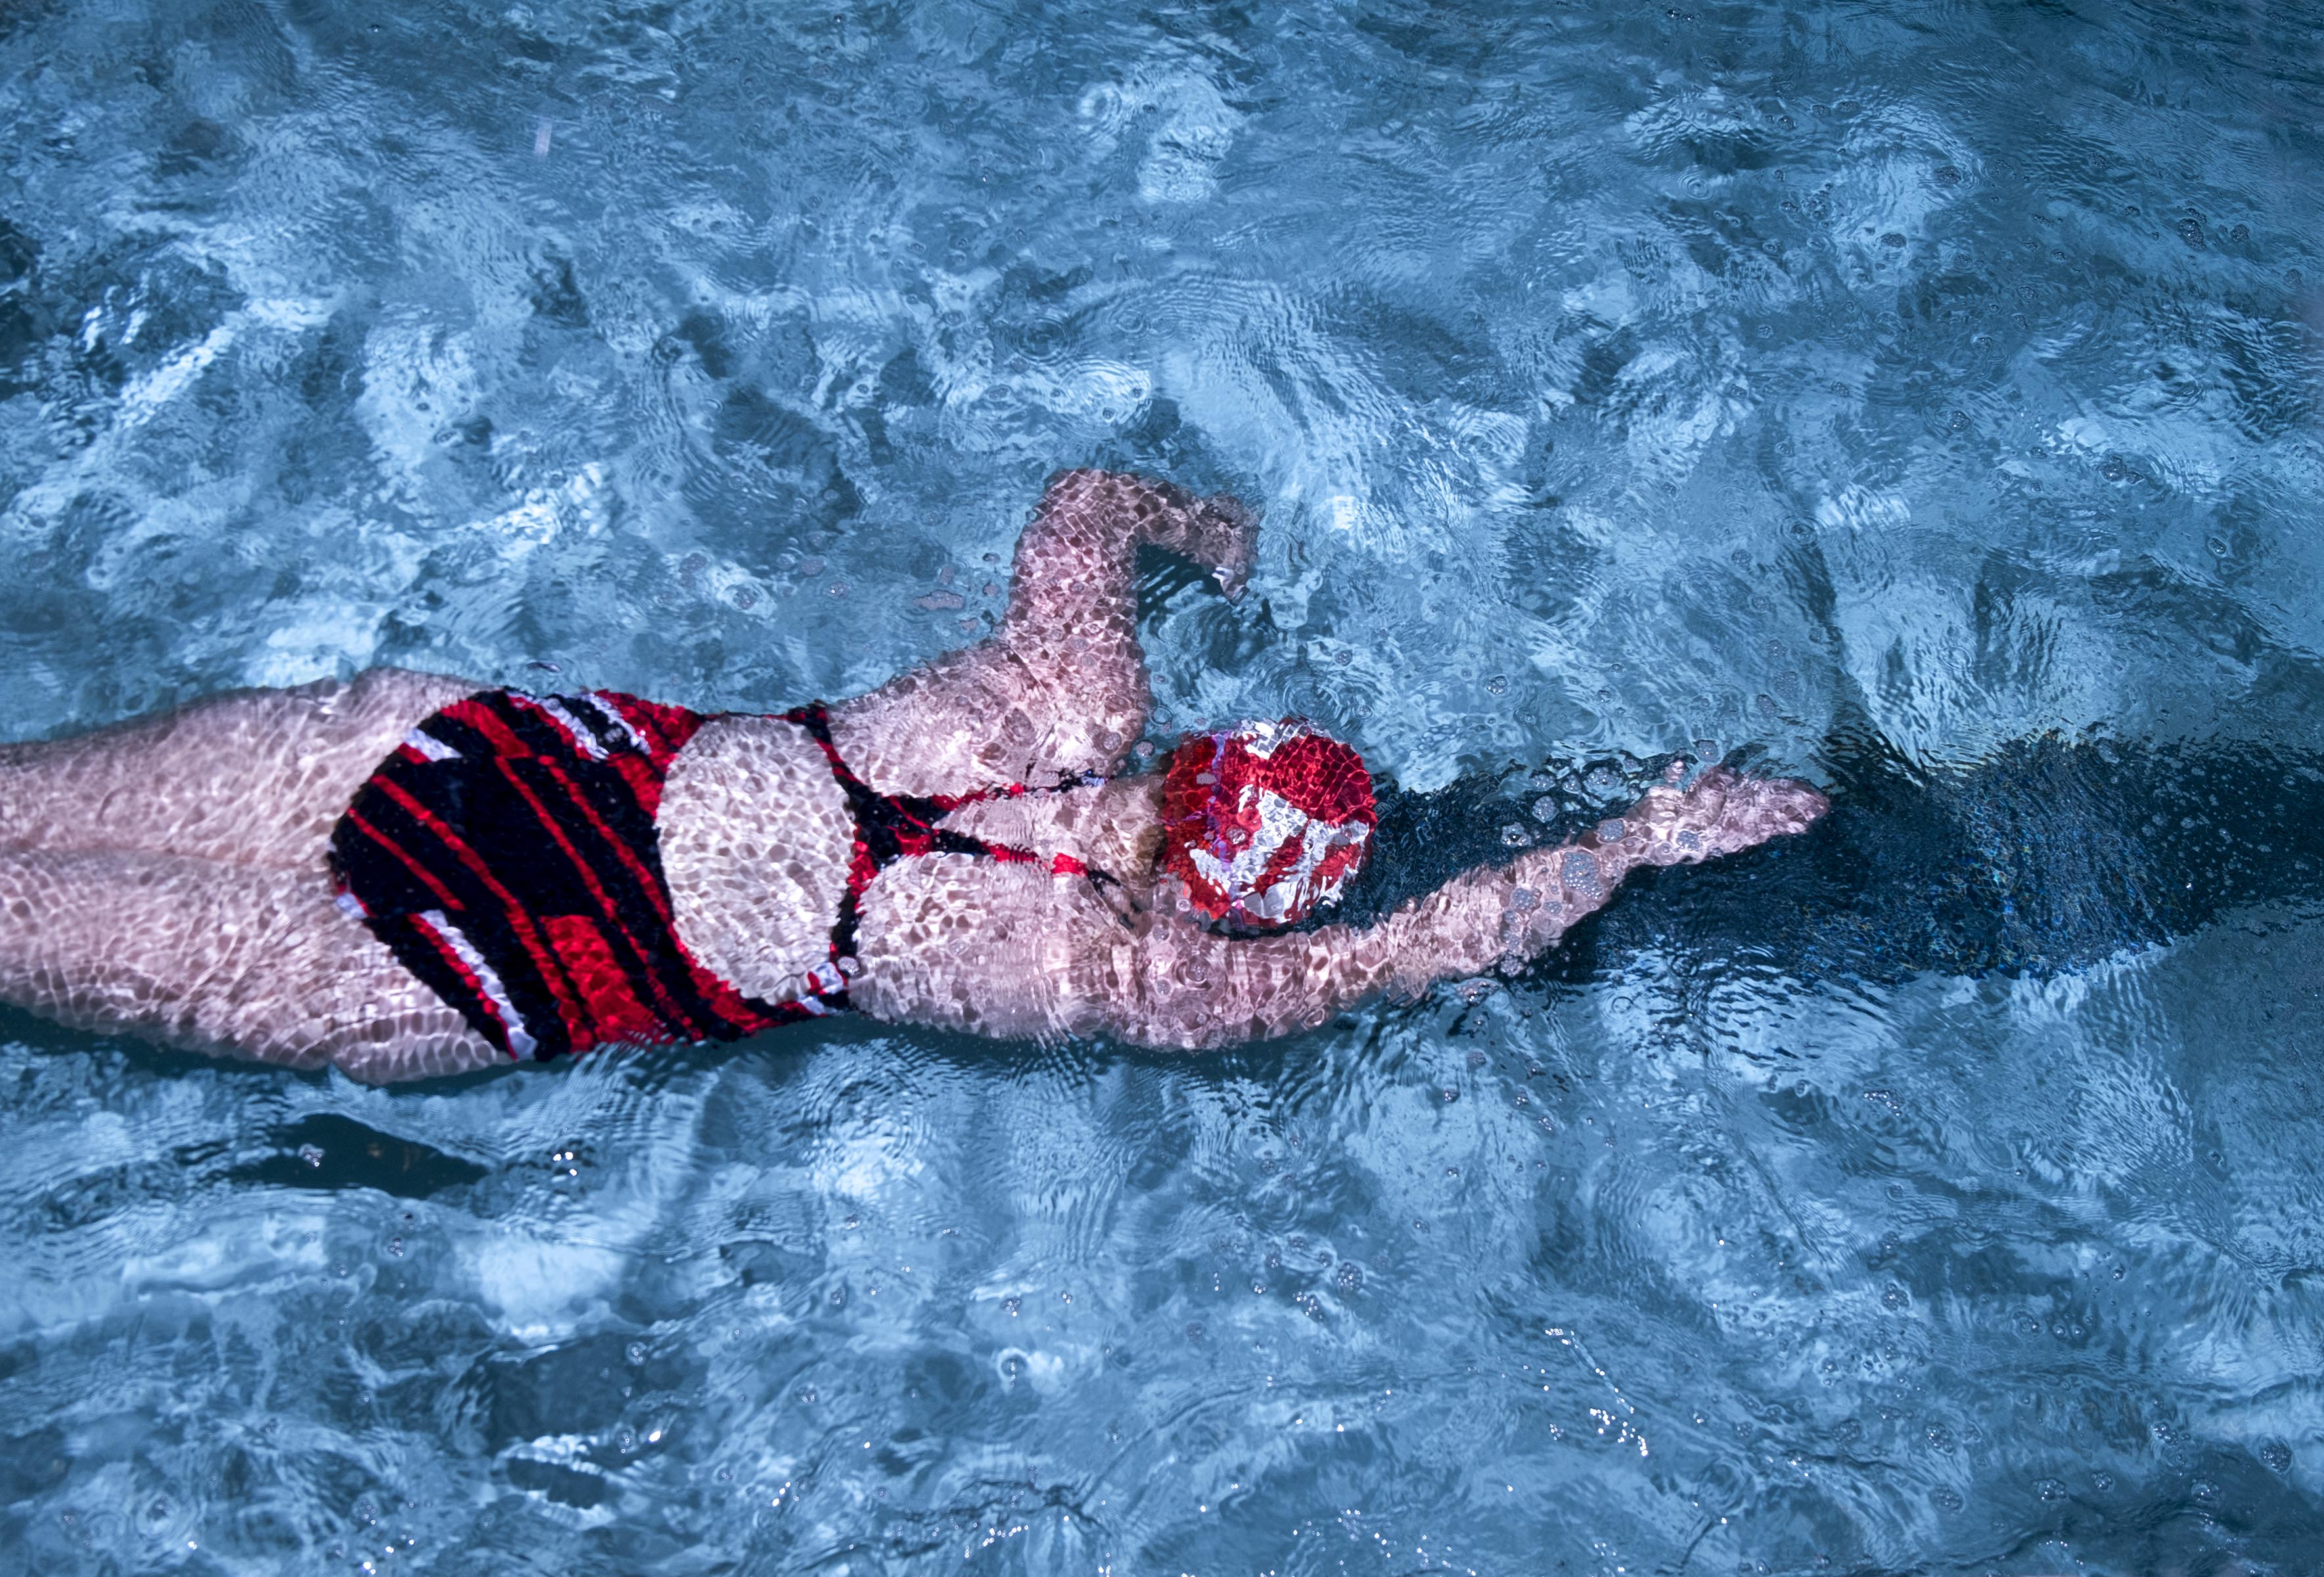 A photograph of a woman in a red swimsuit and a red swimcap, swimming in a pool, shot from above.